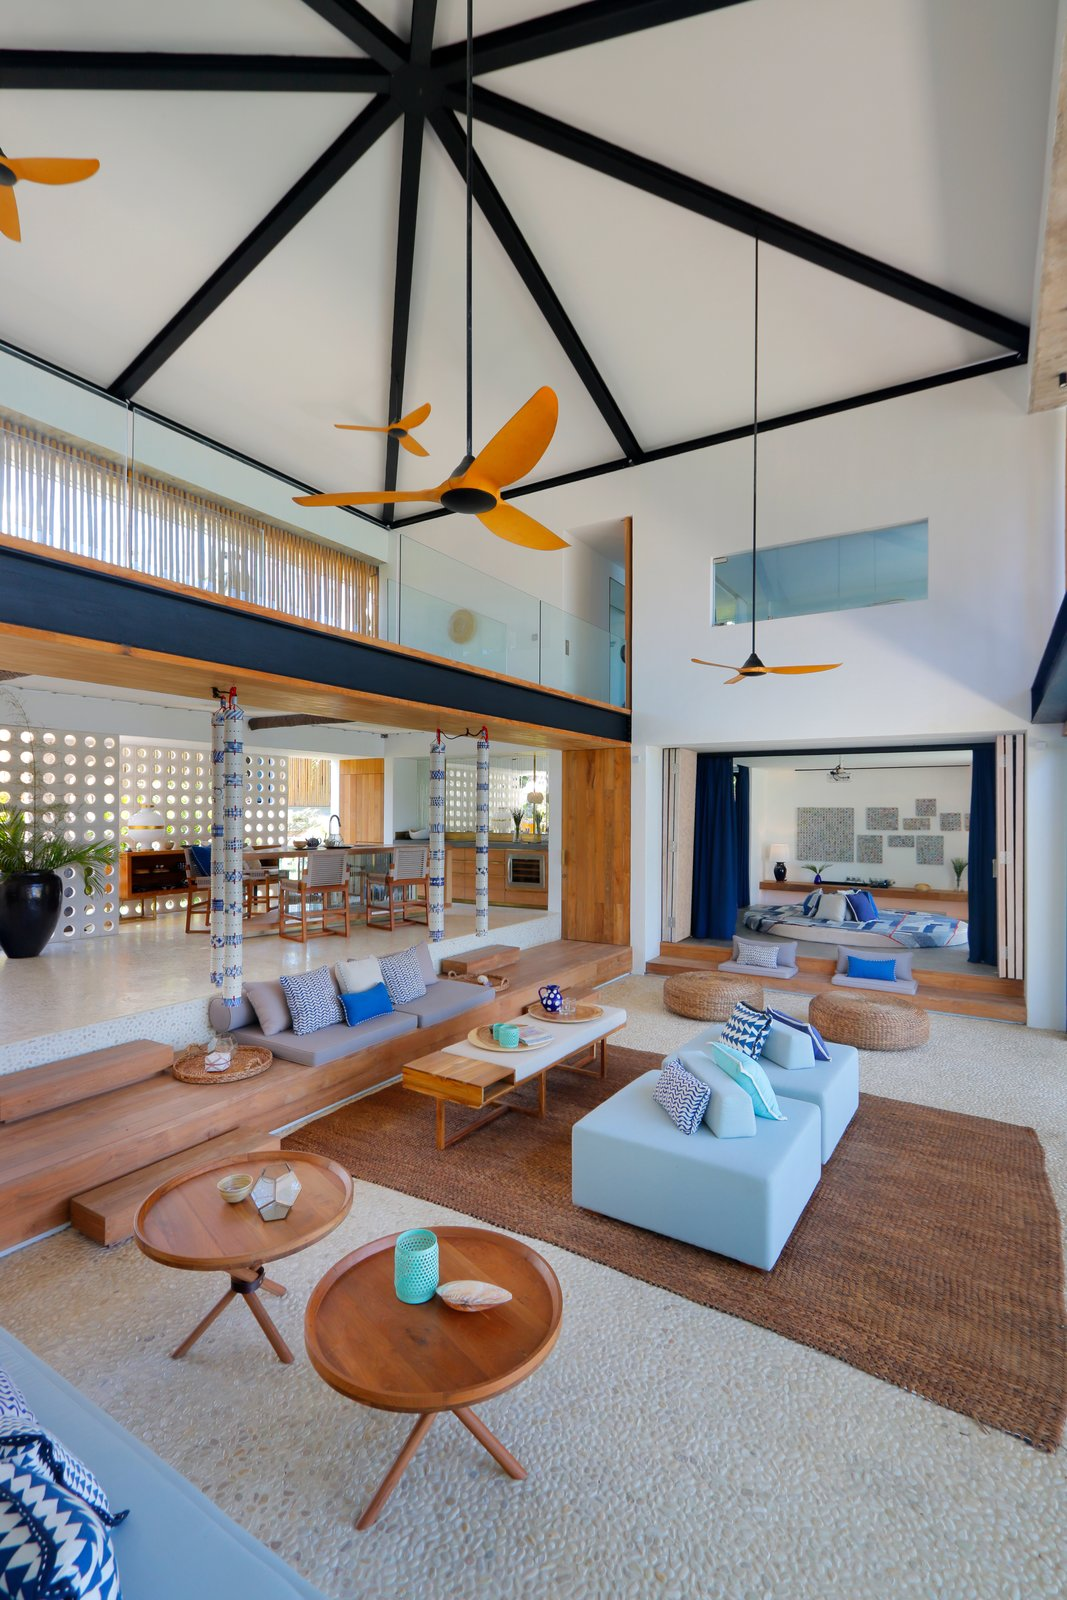 Living Room, Coffee Tables, Sofa, Rug Floor, and Ottomans Ceiling fans help cross-ventilation and allow the double-height communal space to stay cool.     Photo 6 of 19 in Fall in Love With Bali at This Tropical, Modern Retreat